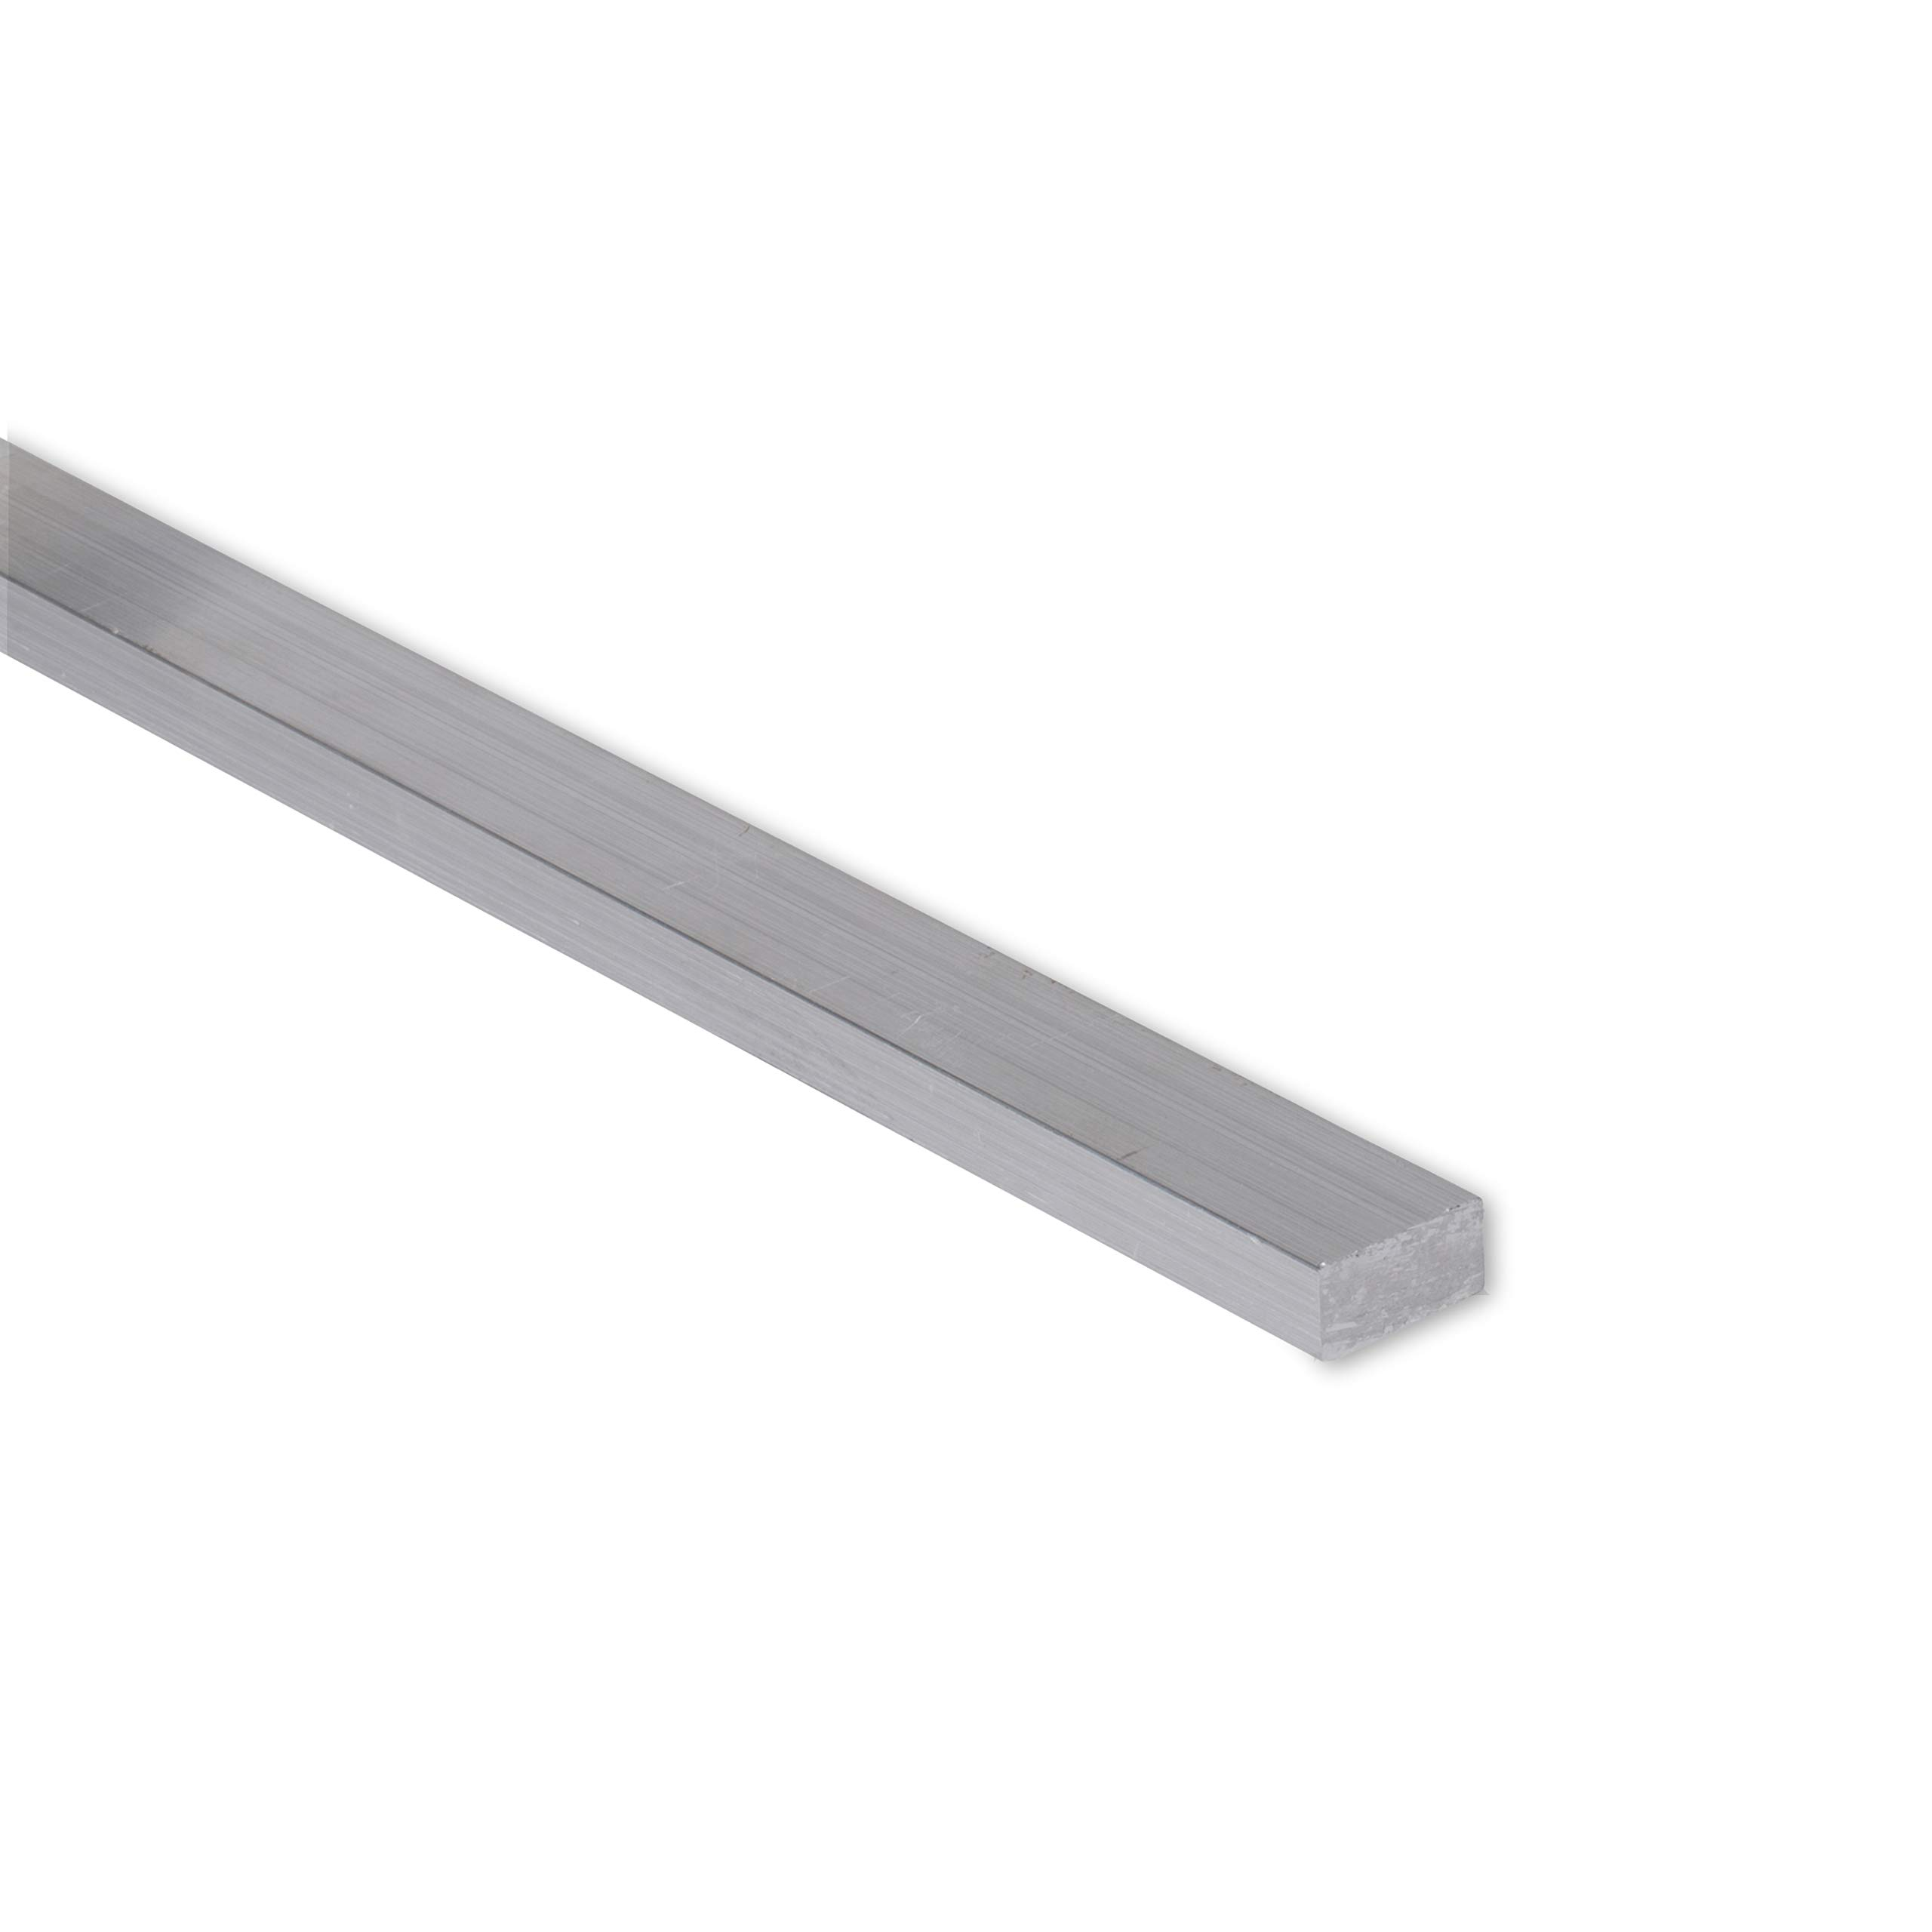 1/4'' X 2'' Stainless Steel Flat Bar, 304 General Purpose Plate, 12'' Length, Mill Stock, 0.25 inch Thick by Remington Industries